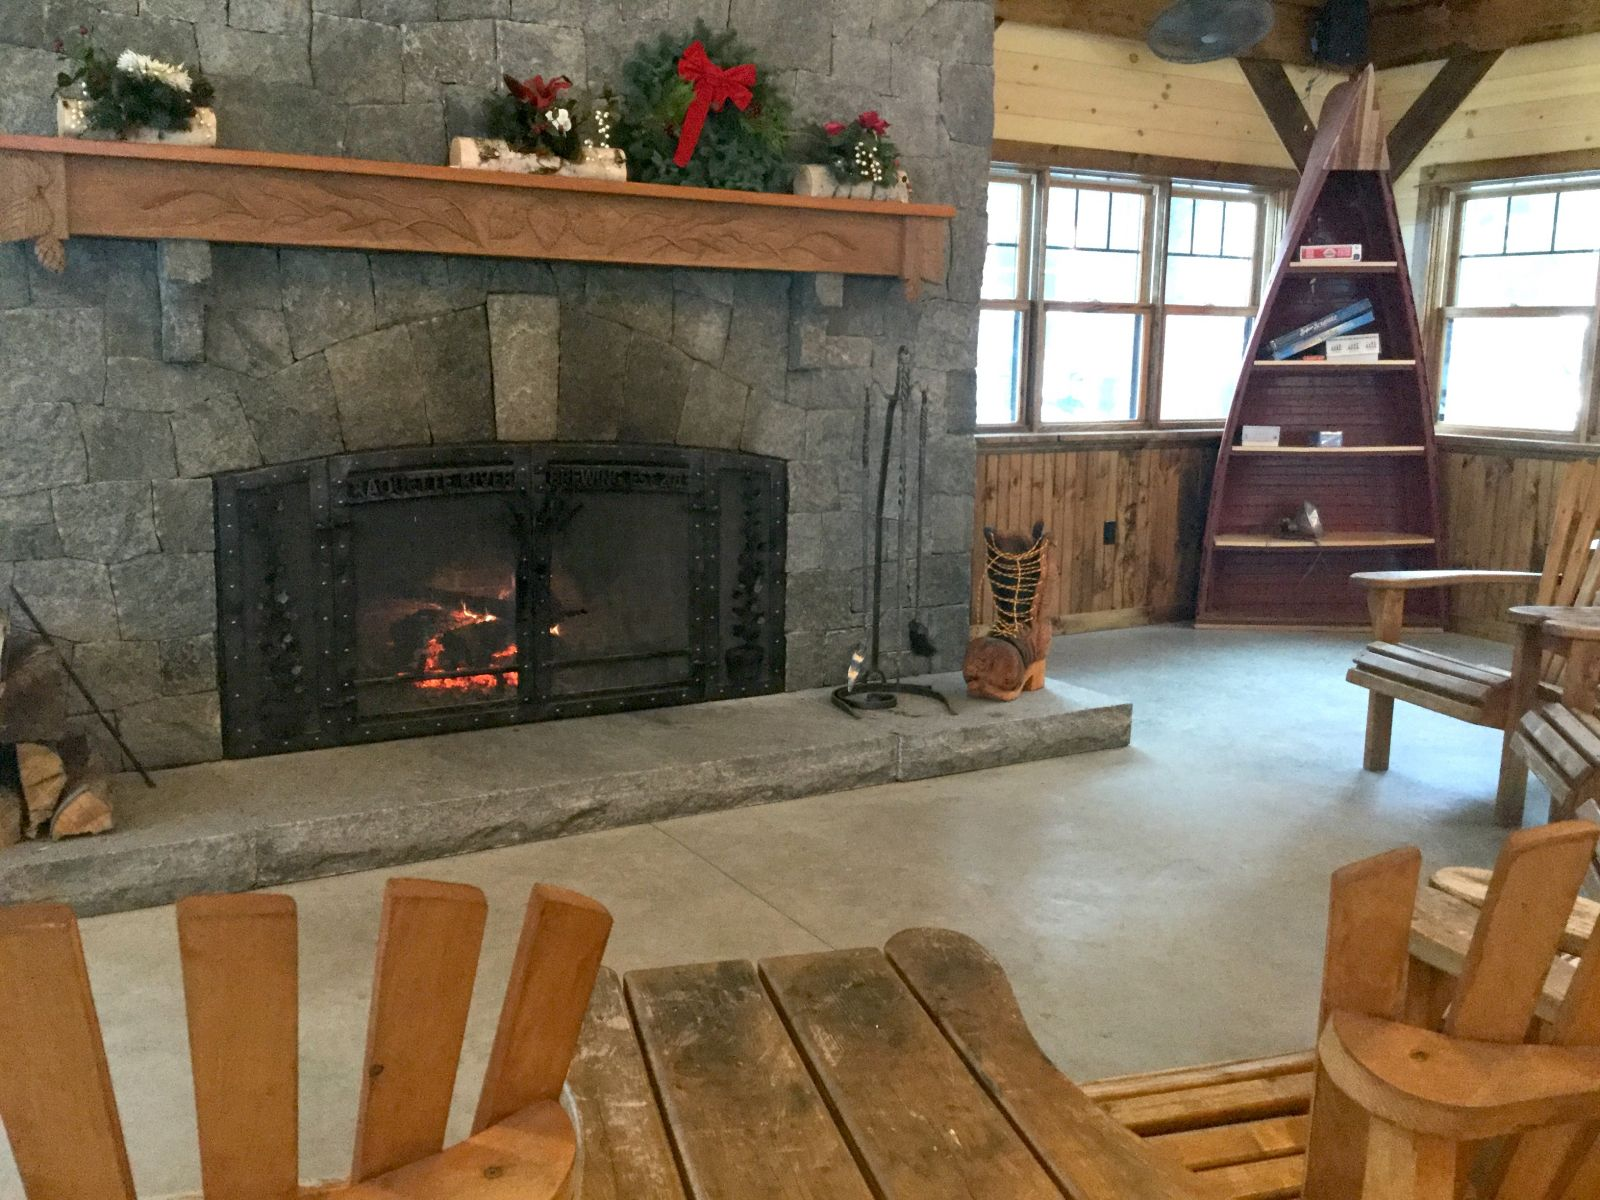 The new dining hall has a wonderful fireplace area for convivial conversation.